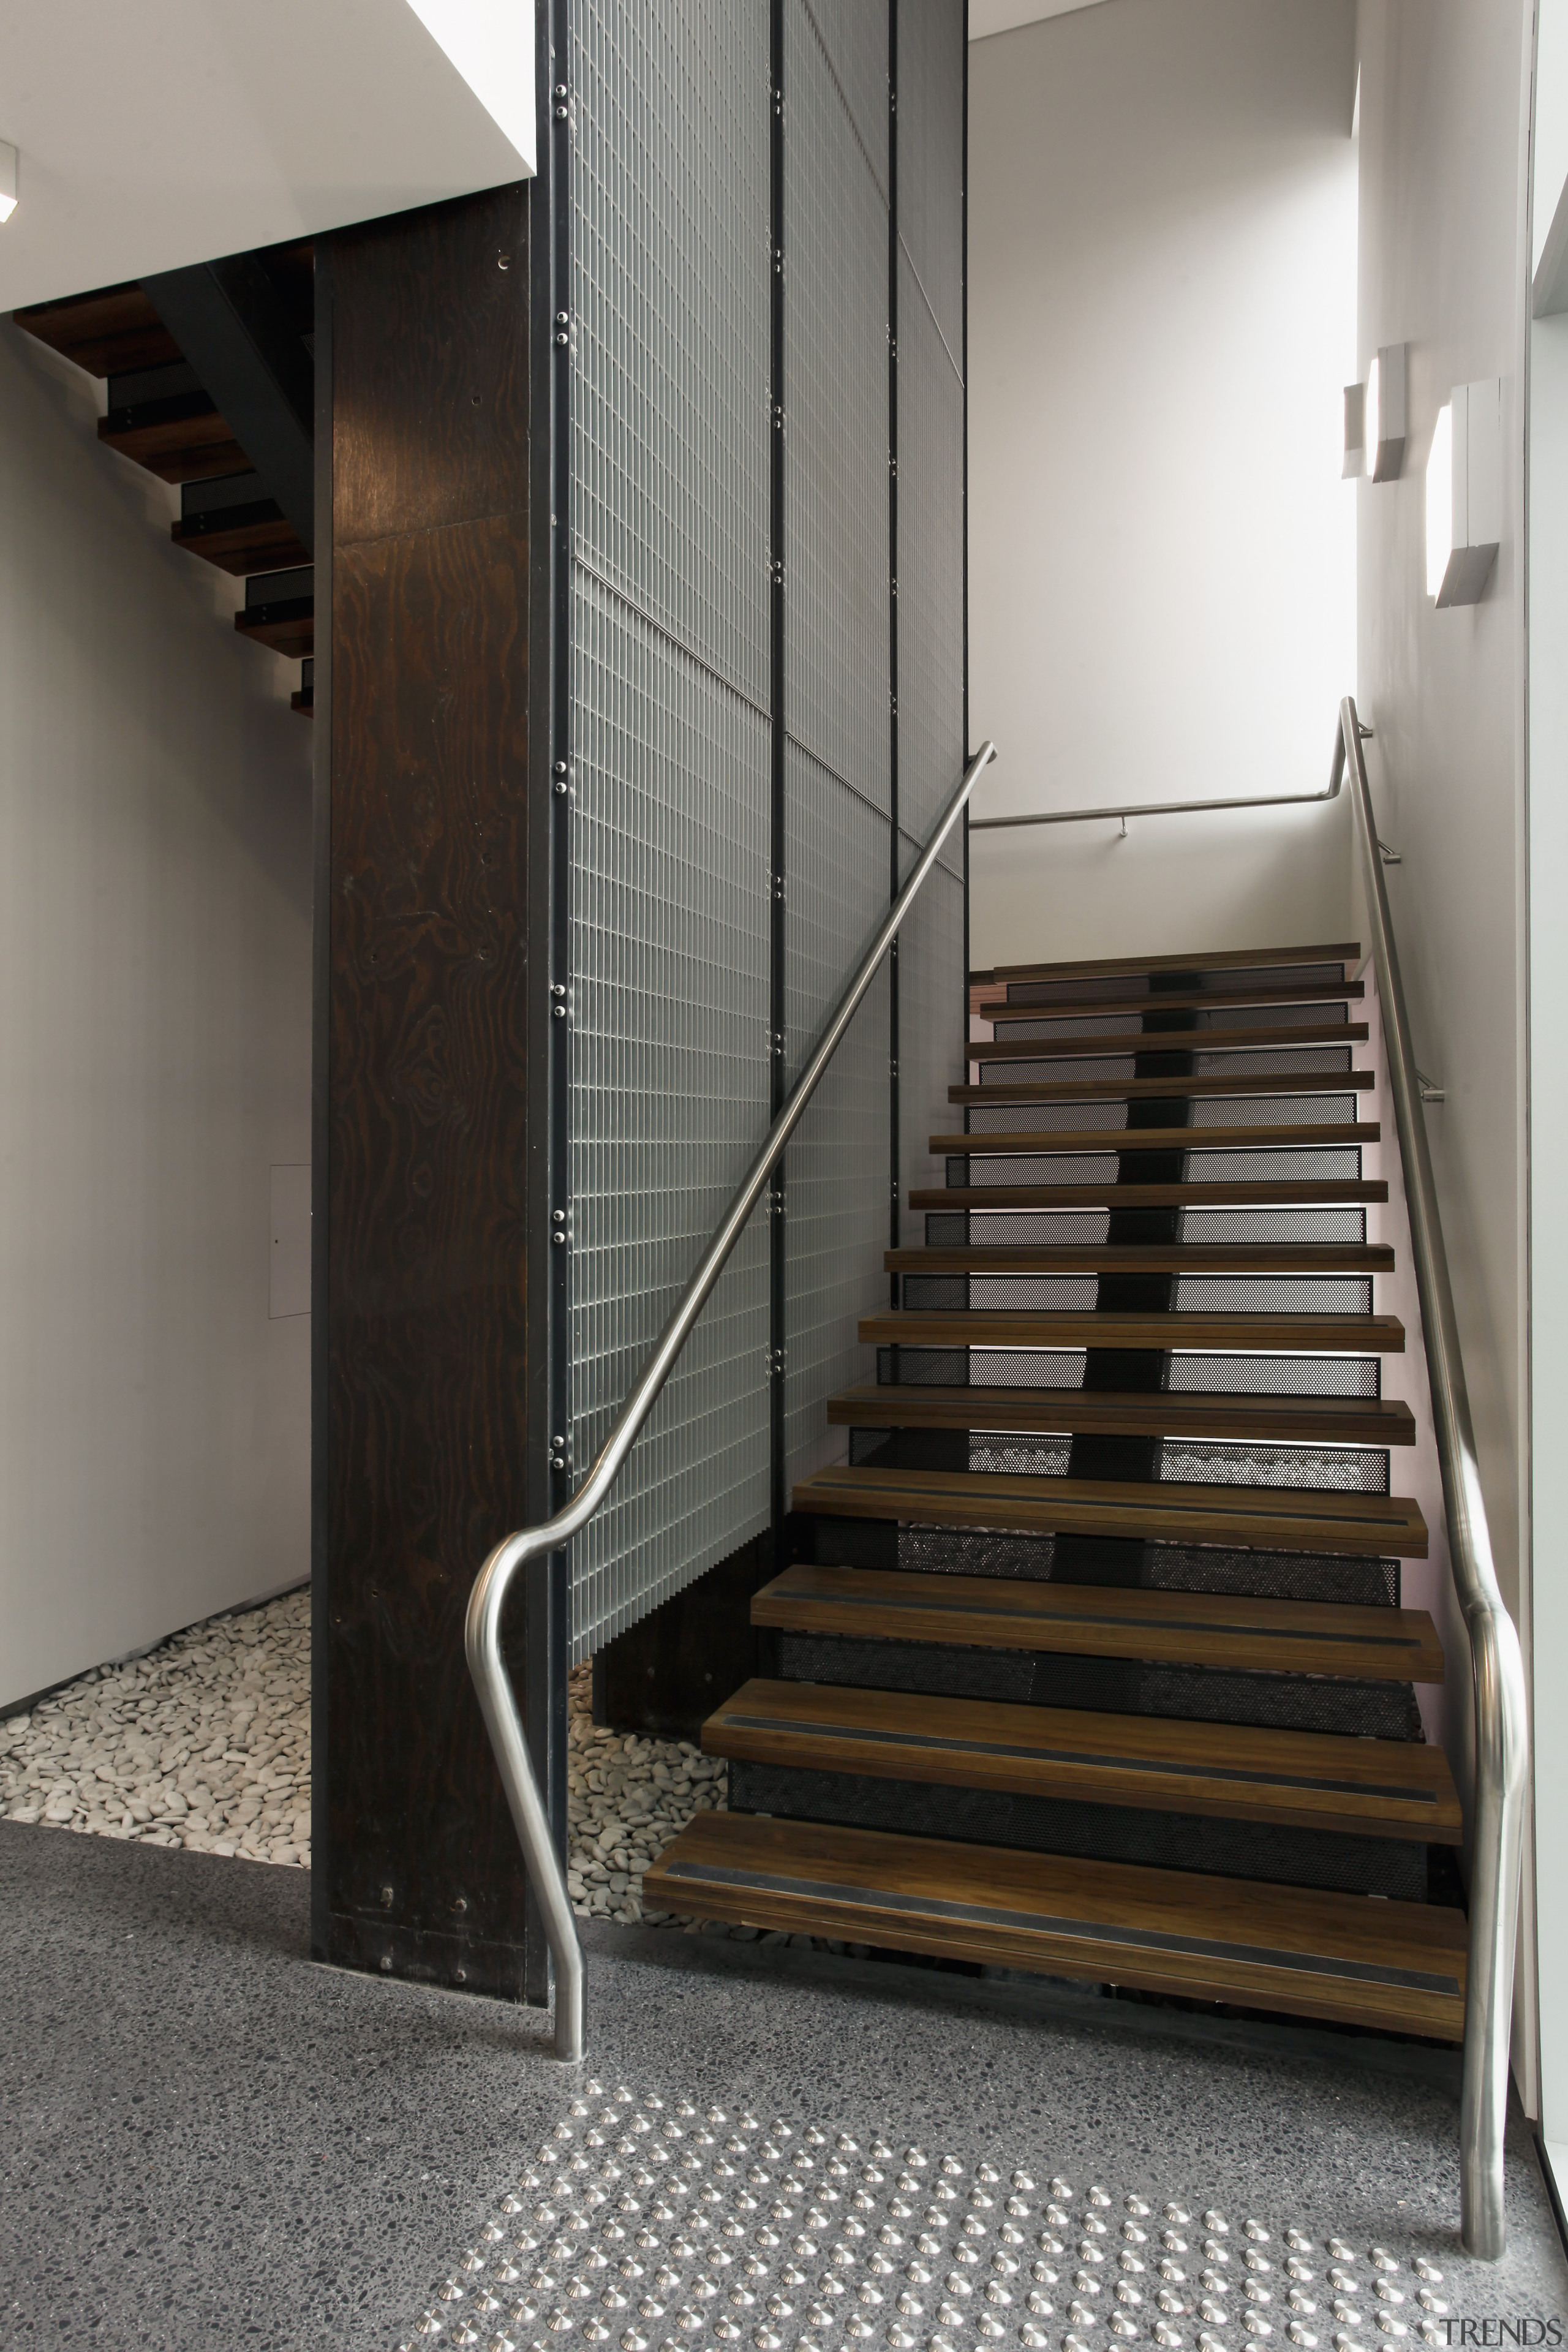 This boutique office development on a brownfields site architecture, floor, flooring, glass, handrail, interior design, stairs, wood, gray, black